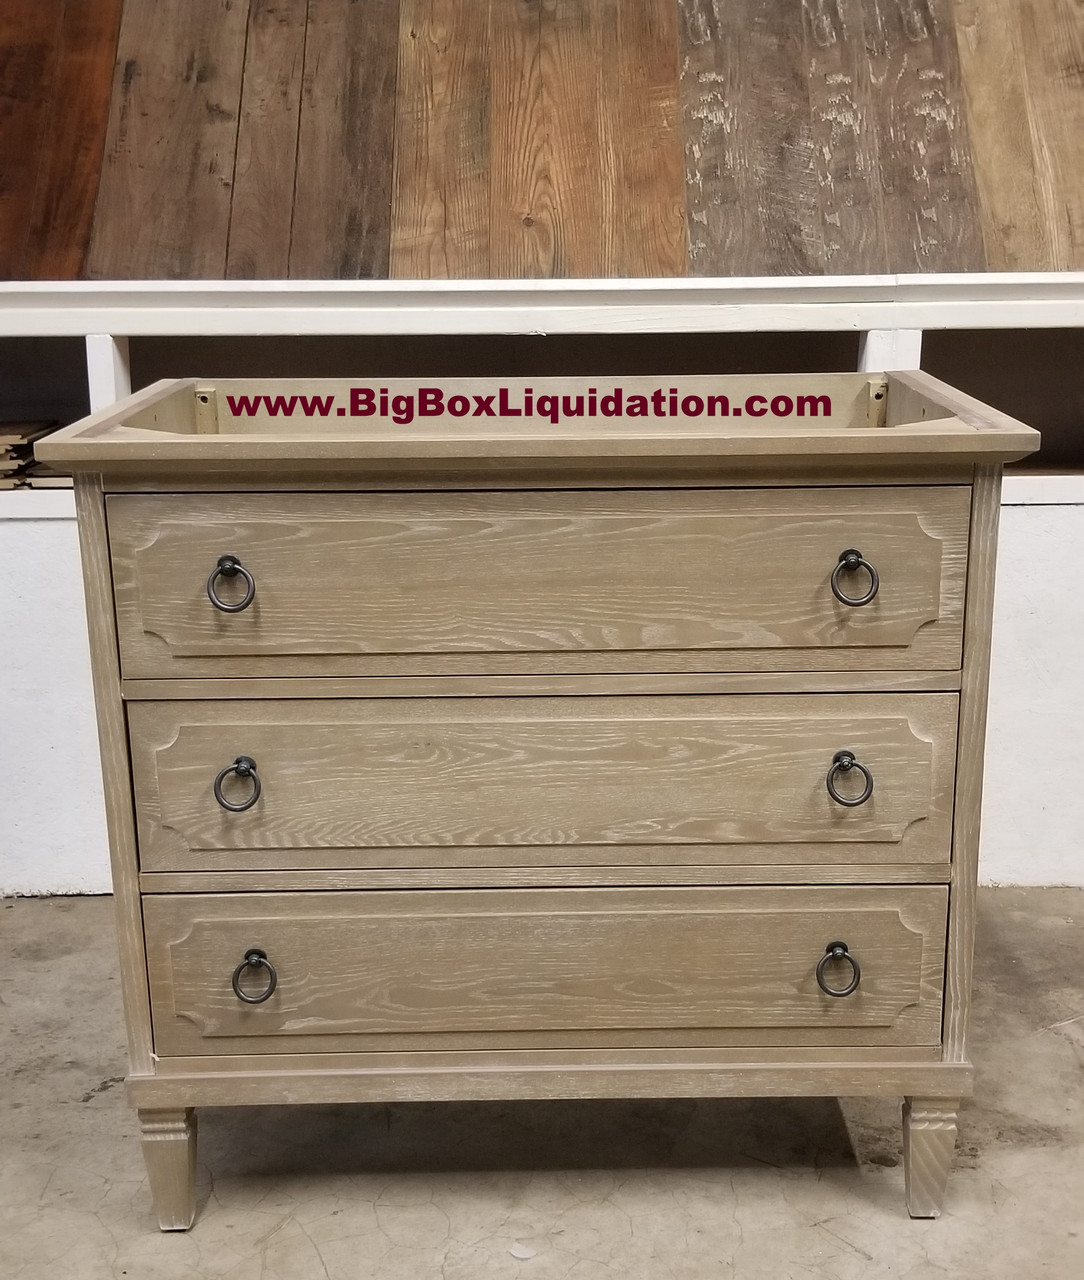 Solid Wood Ann Stained Weathered Gray 36 In X 22 In All Drawers Slow Close Fully Assembled Bath Vanity Cabinet Only Big Box Liquidation Llc